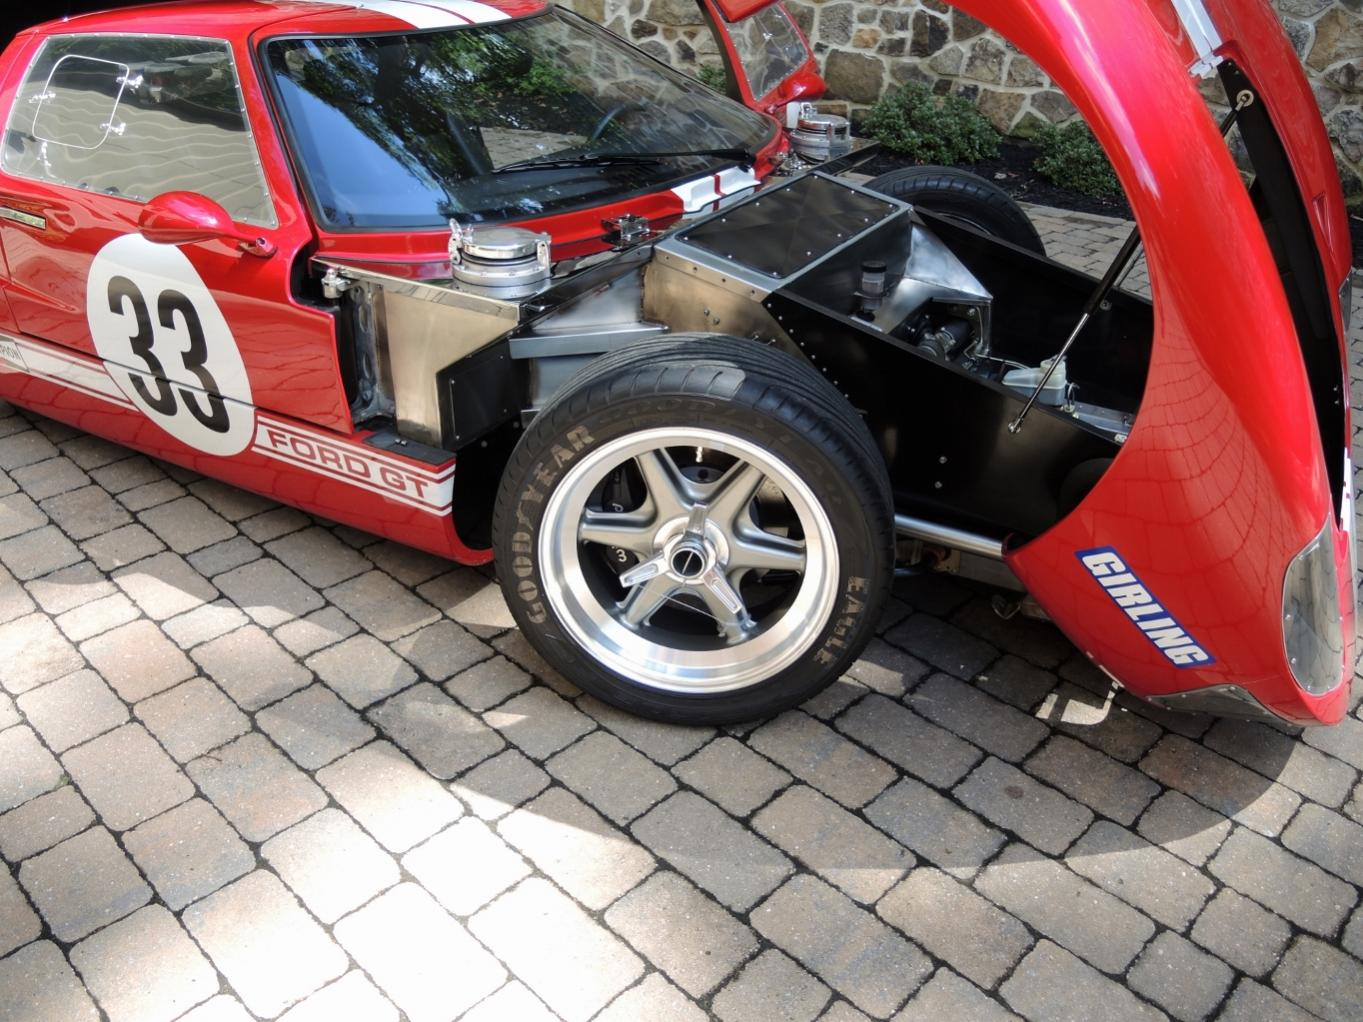 1966 CAV GT For Sale **SOLD**-front-q-o2-1920x1440-1364x1023-jpg